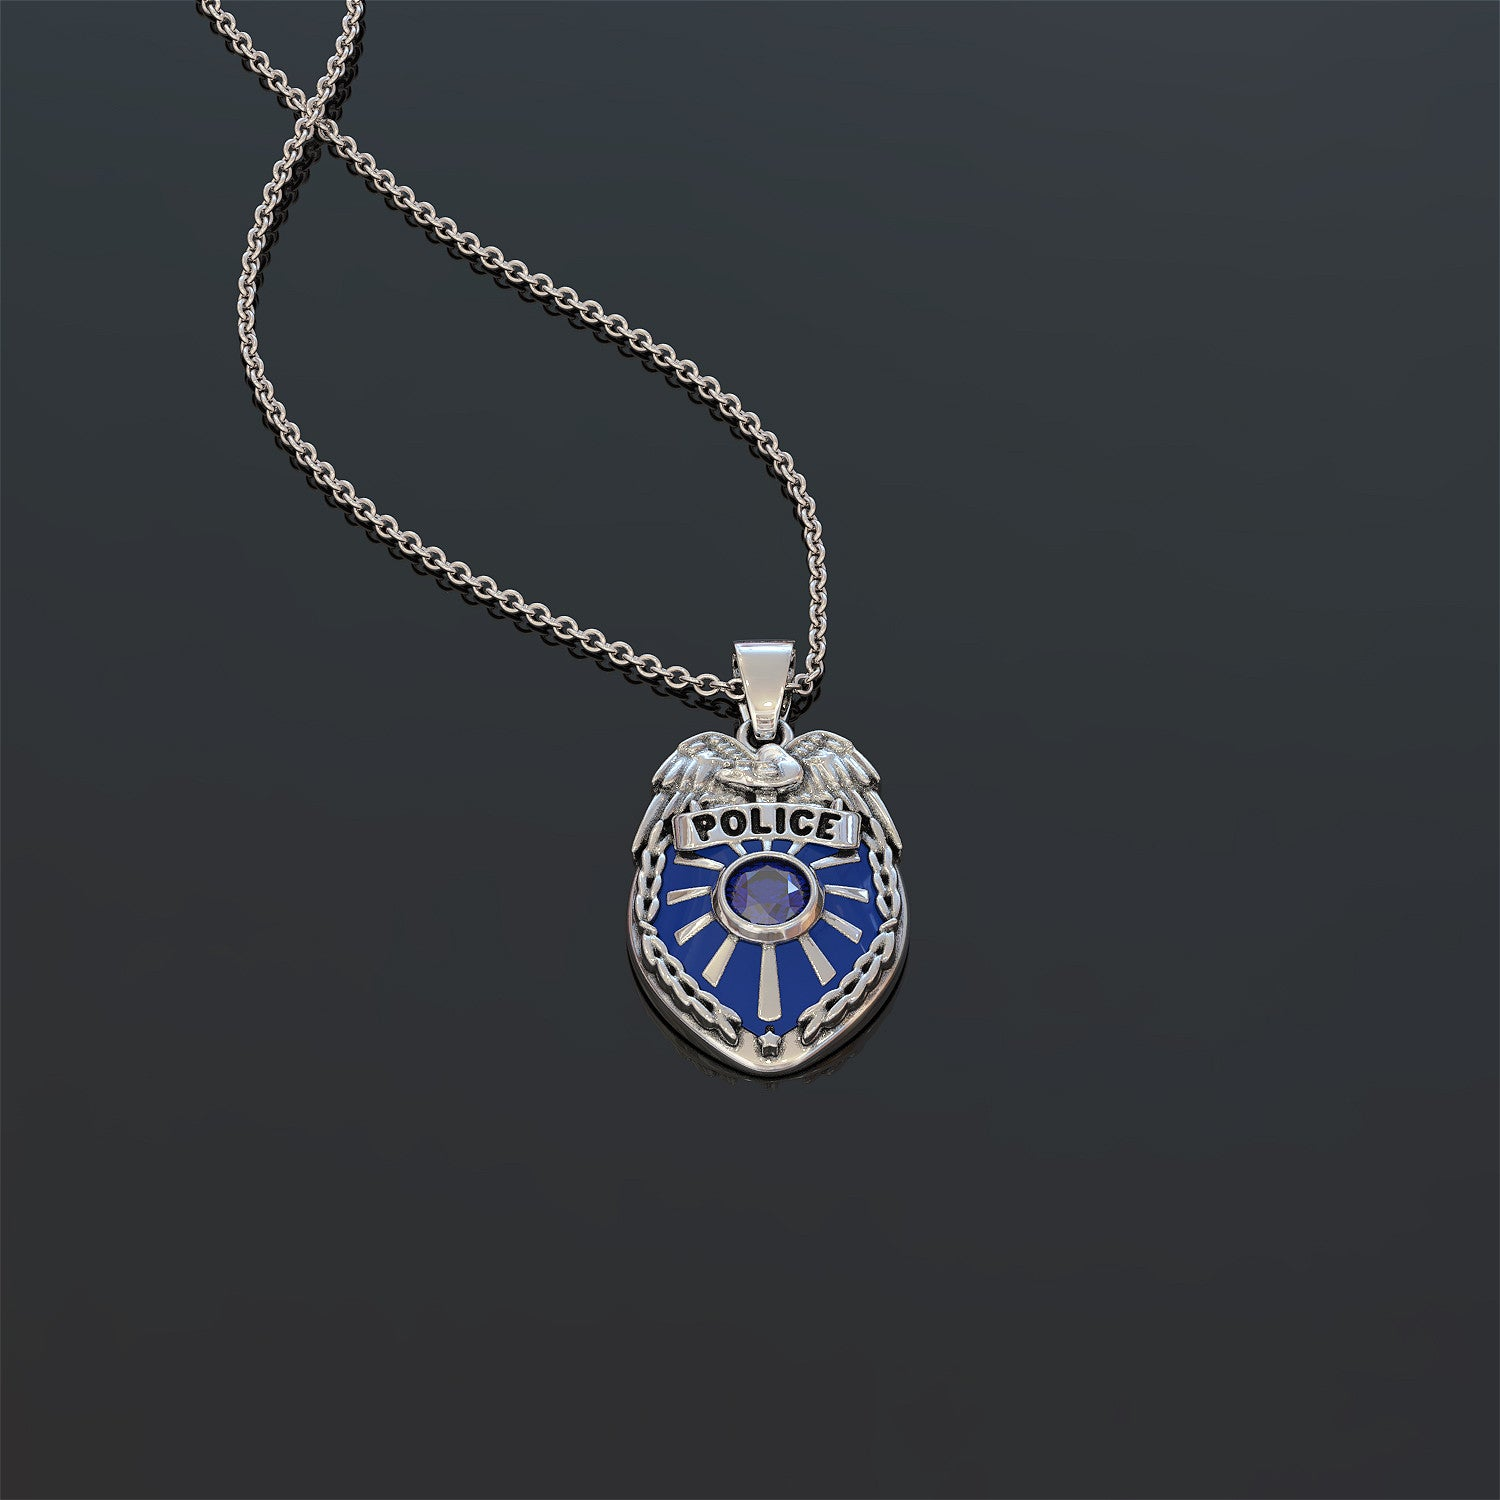 Friends of Officers Necklace